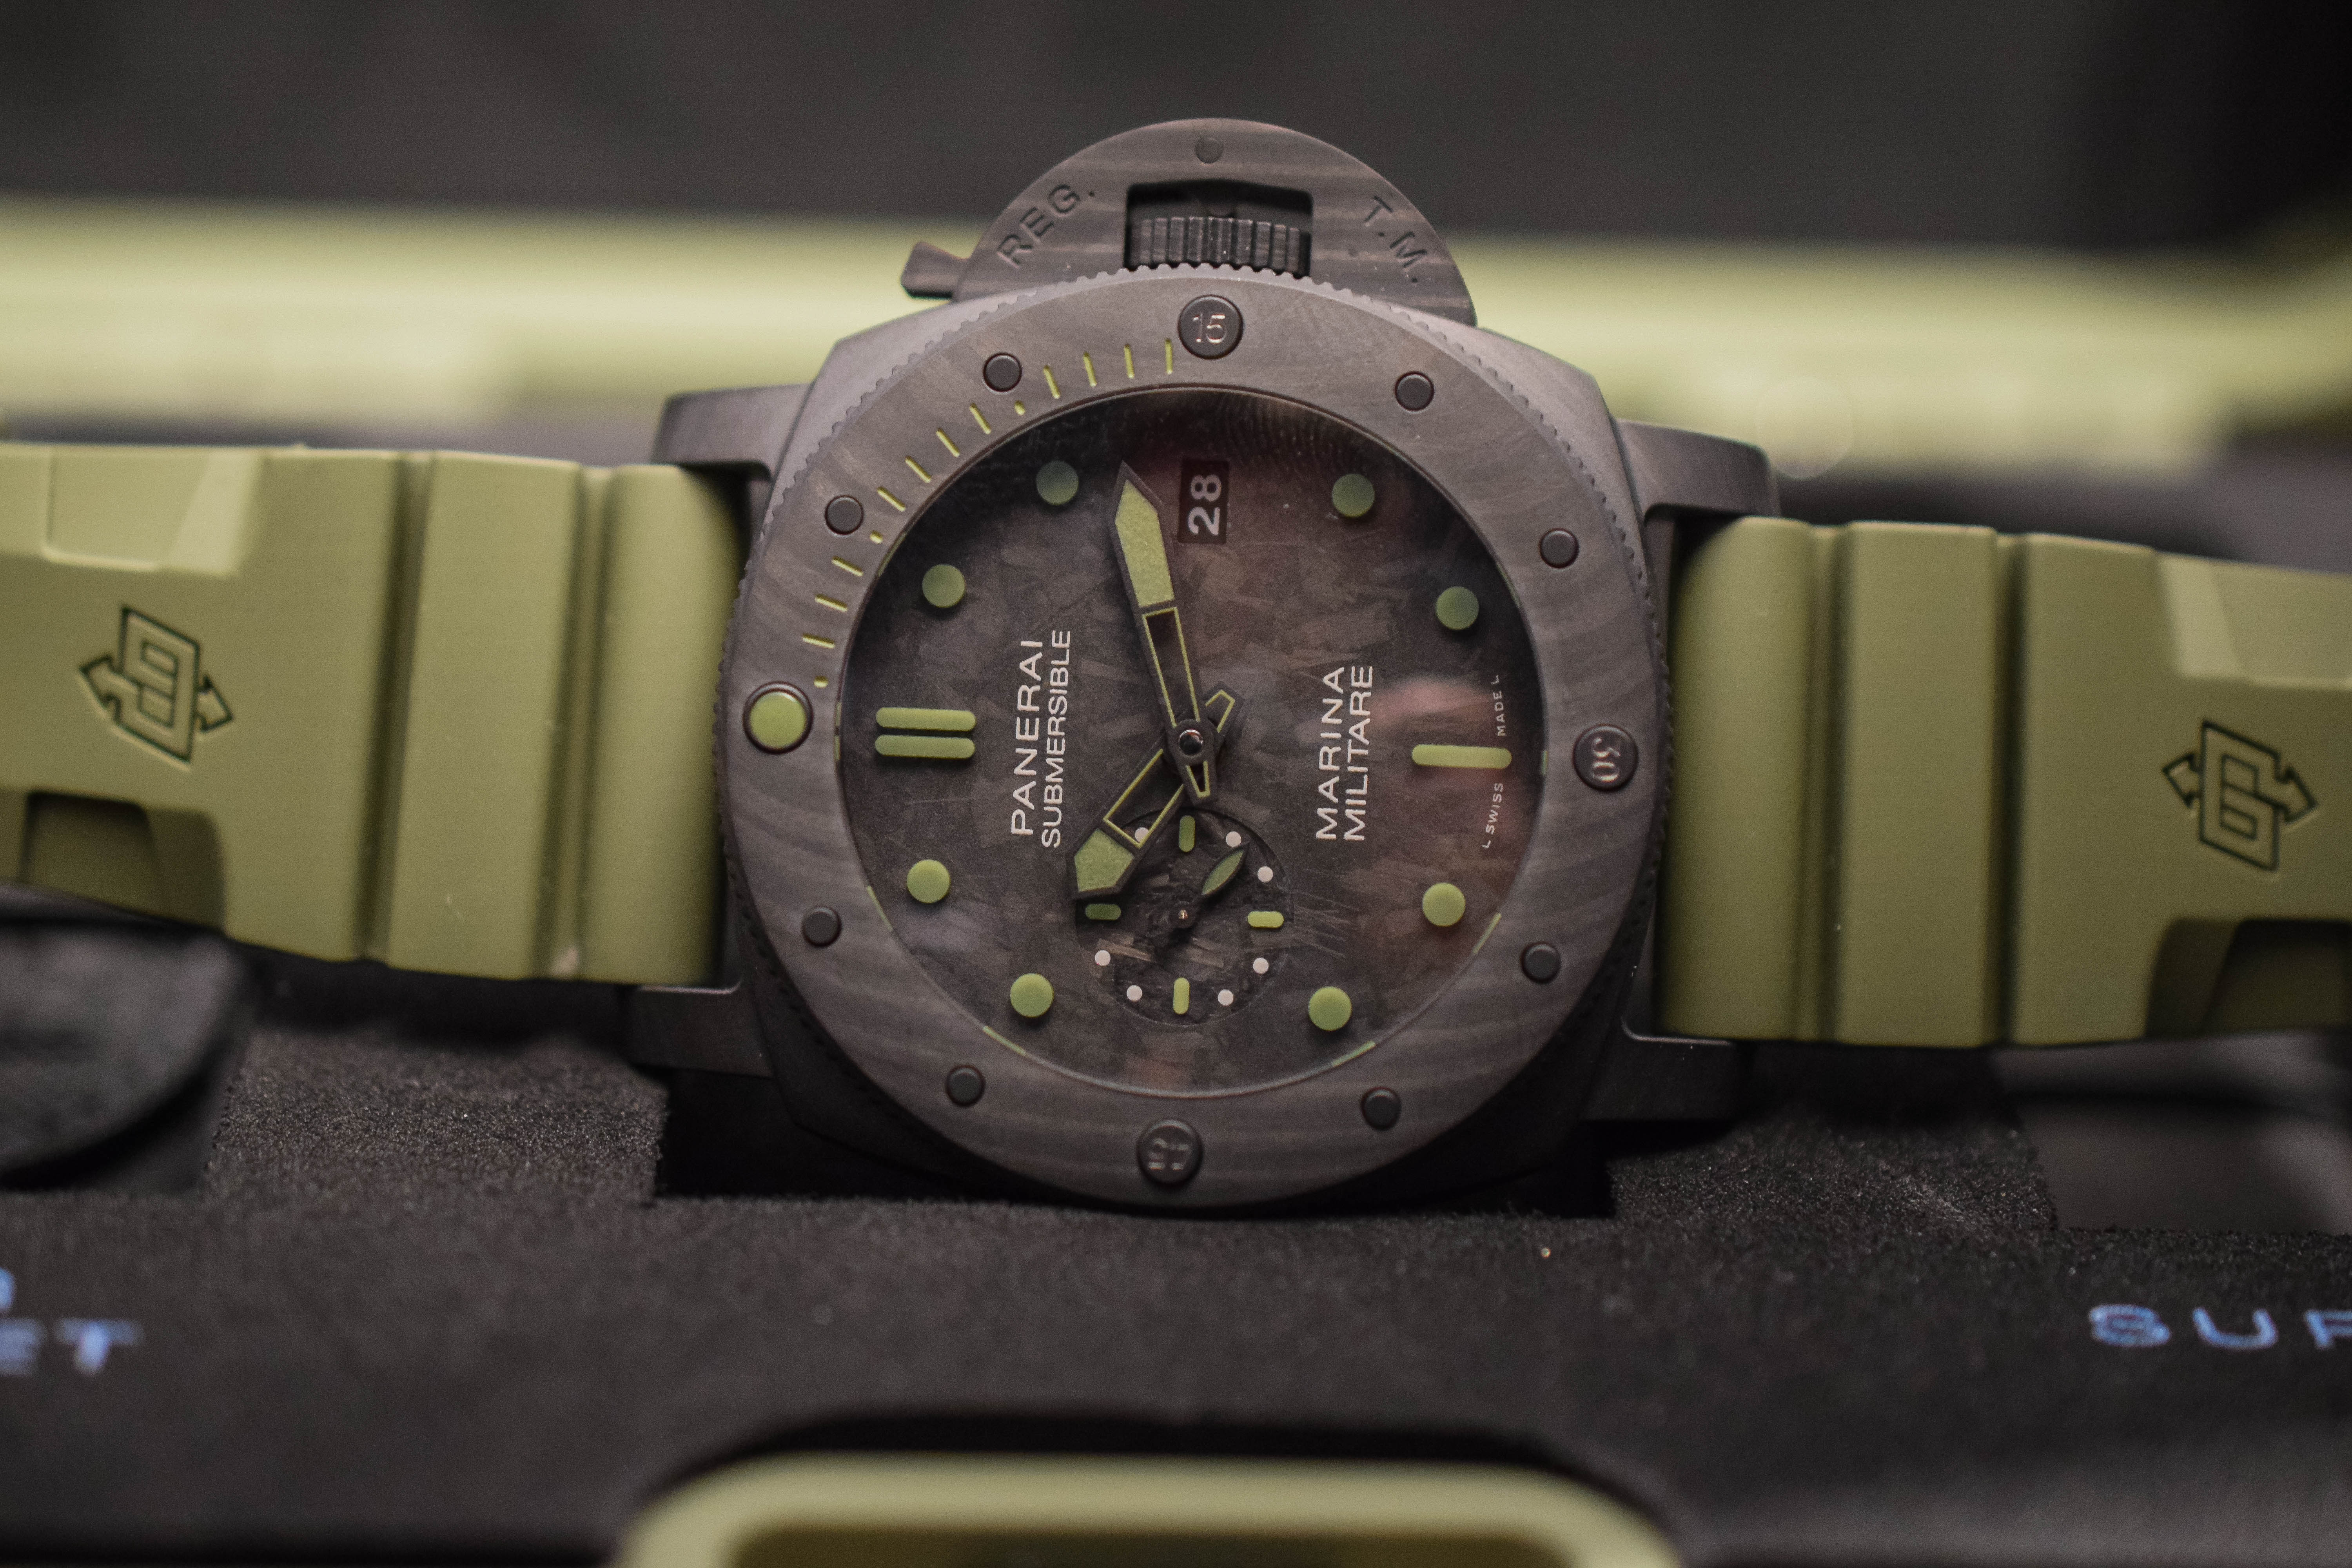 Panerai Submersible Marina Militare Carbotech PAM00961 - SIHH 2019 hands-on - 5